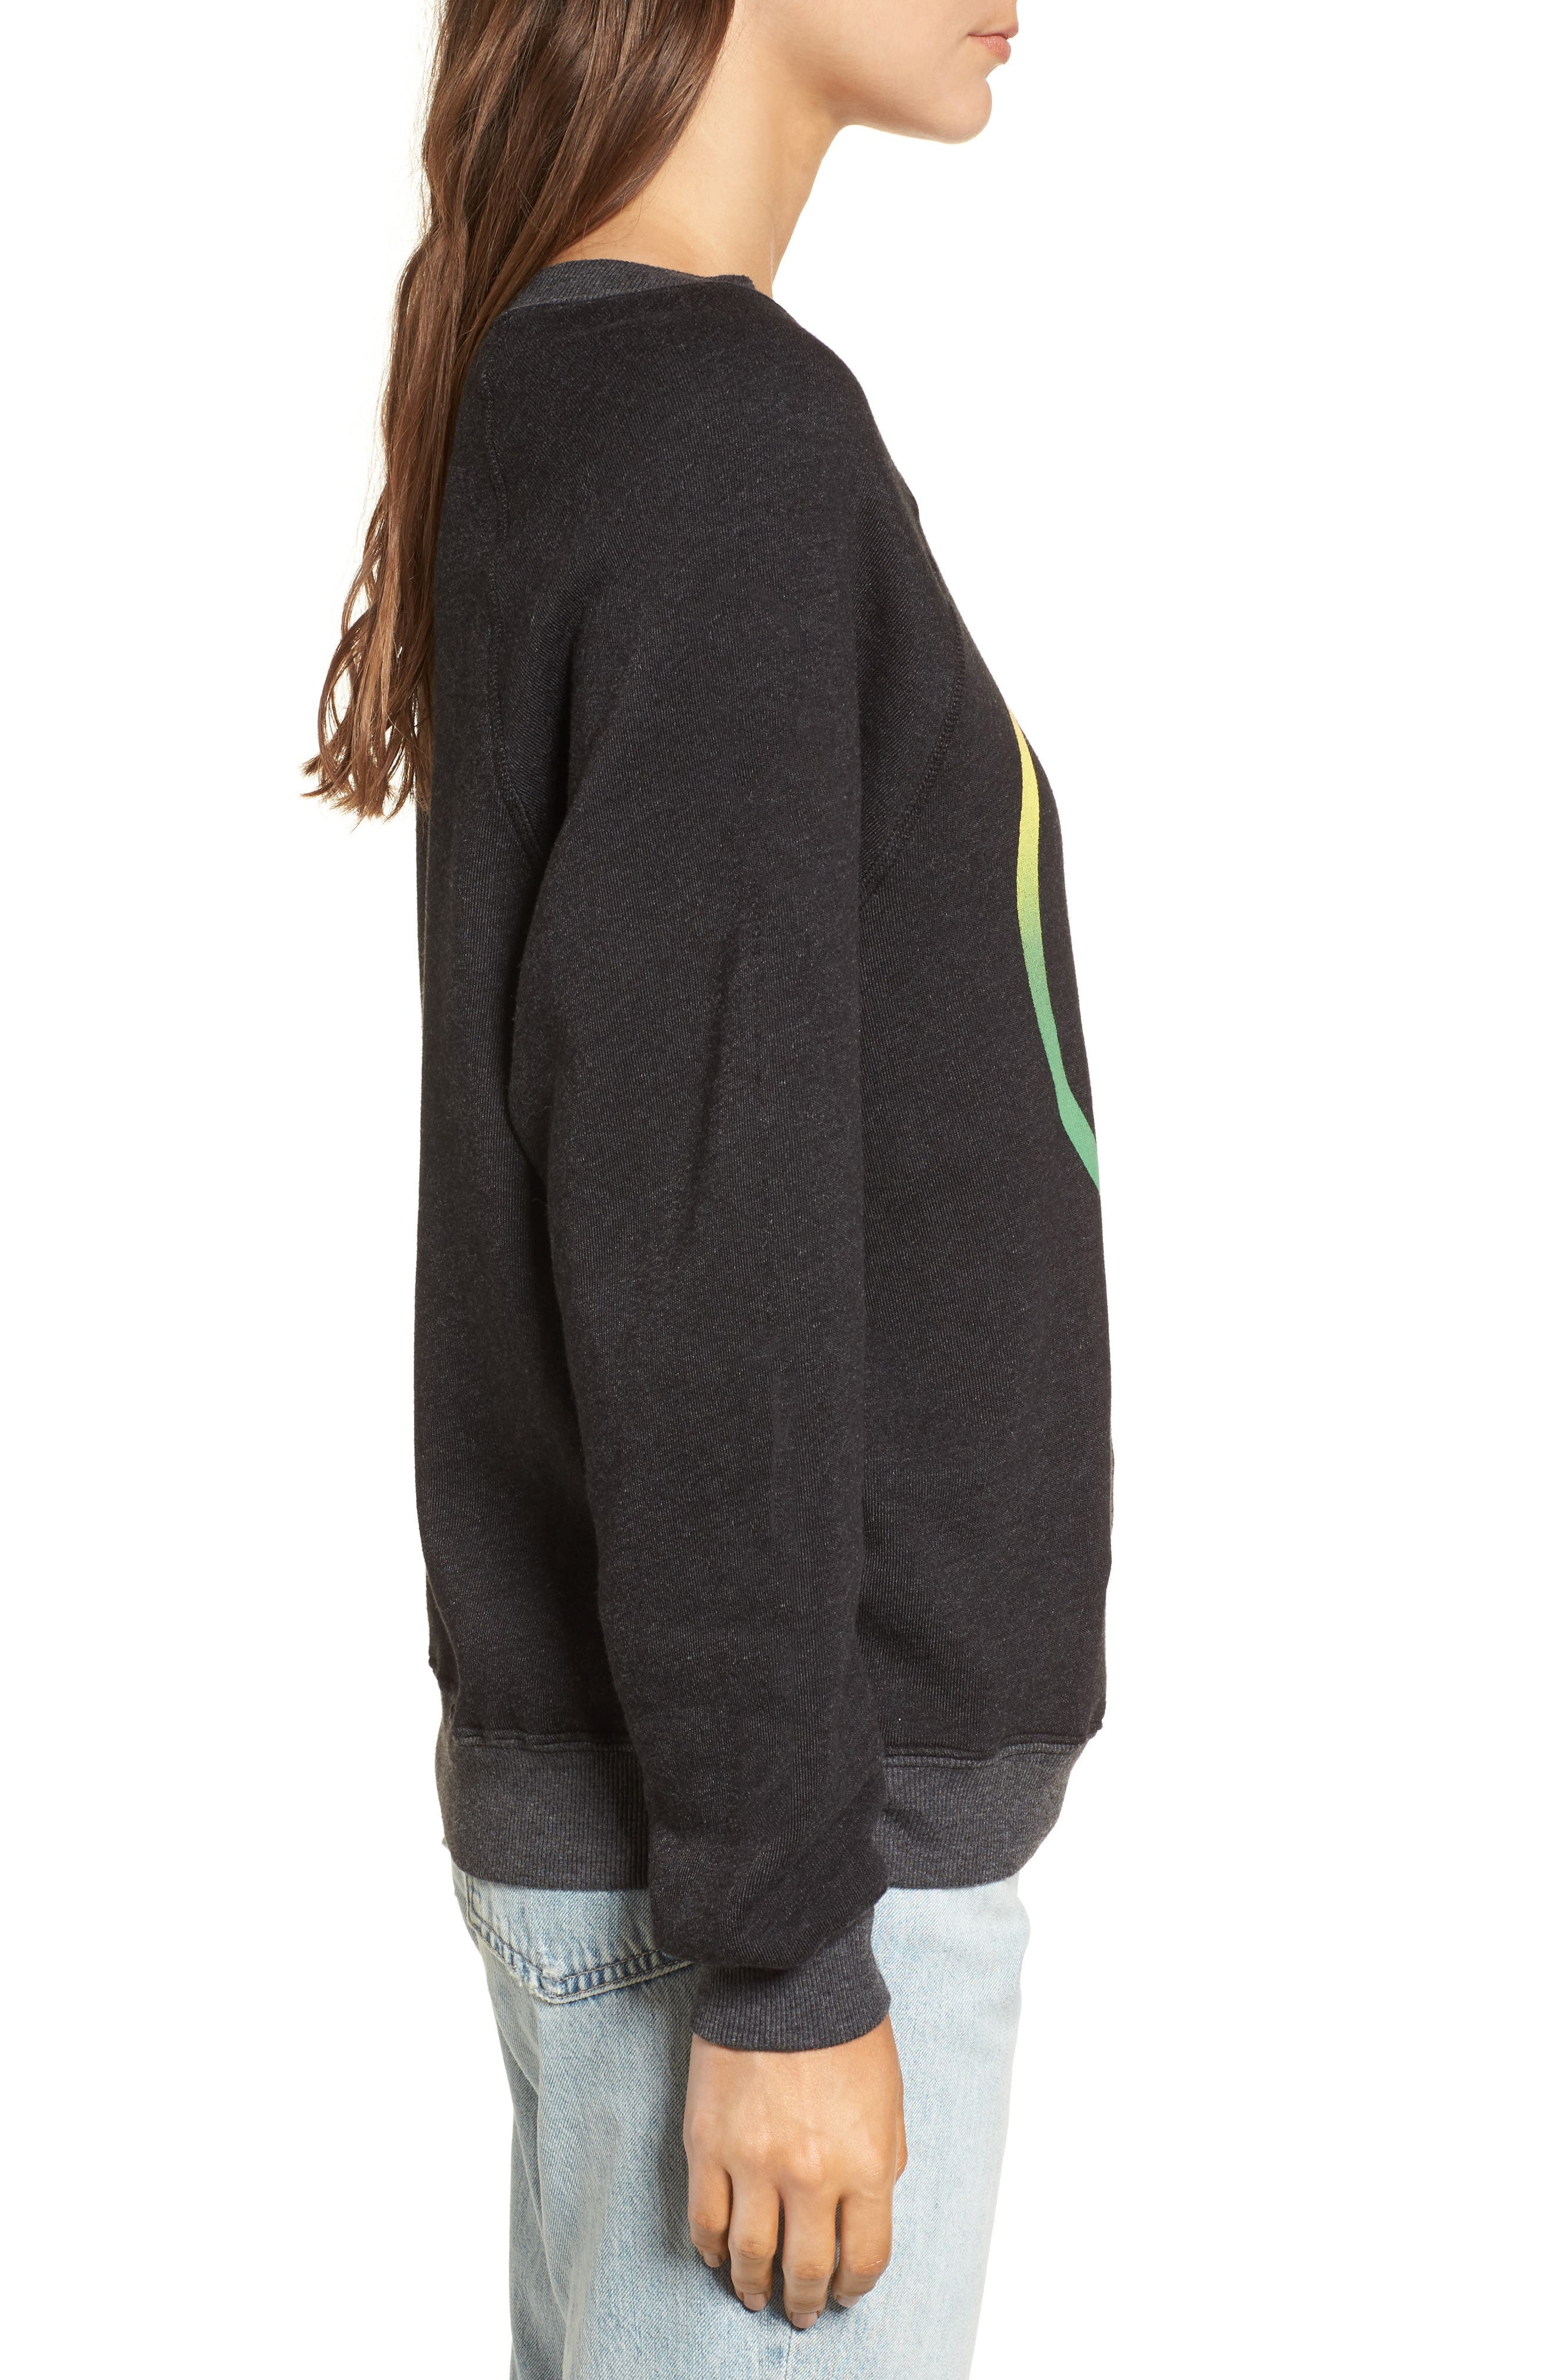 Body by Trey - Sommers Sweatshirt,                             Alternate thumbnail 3, color,